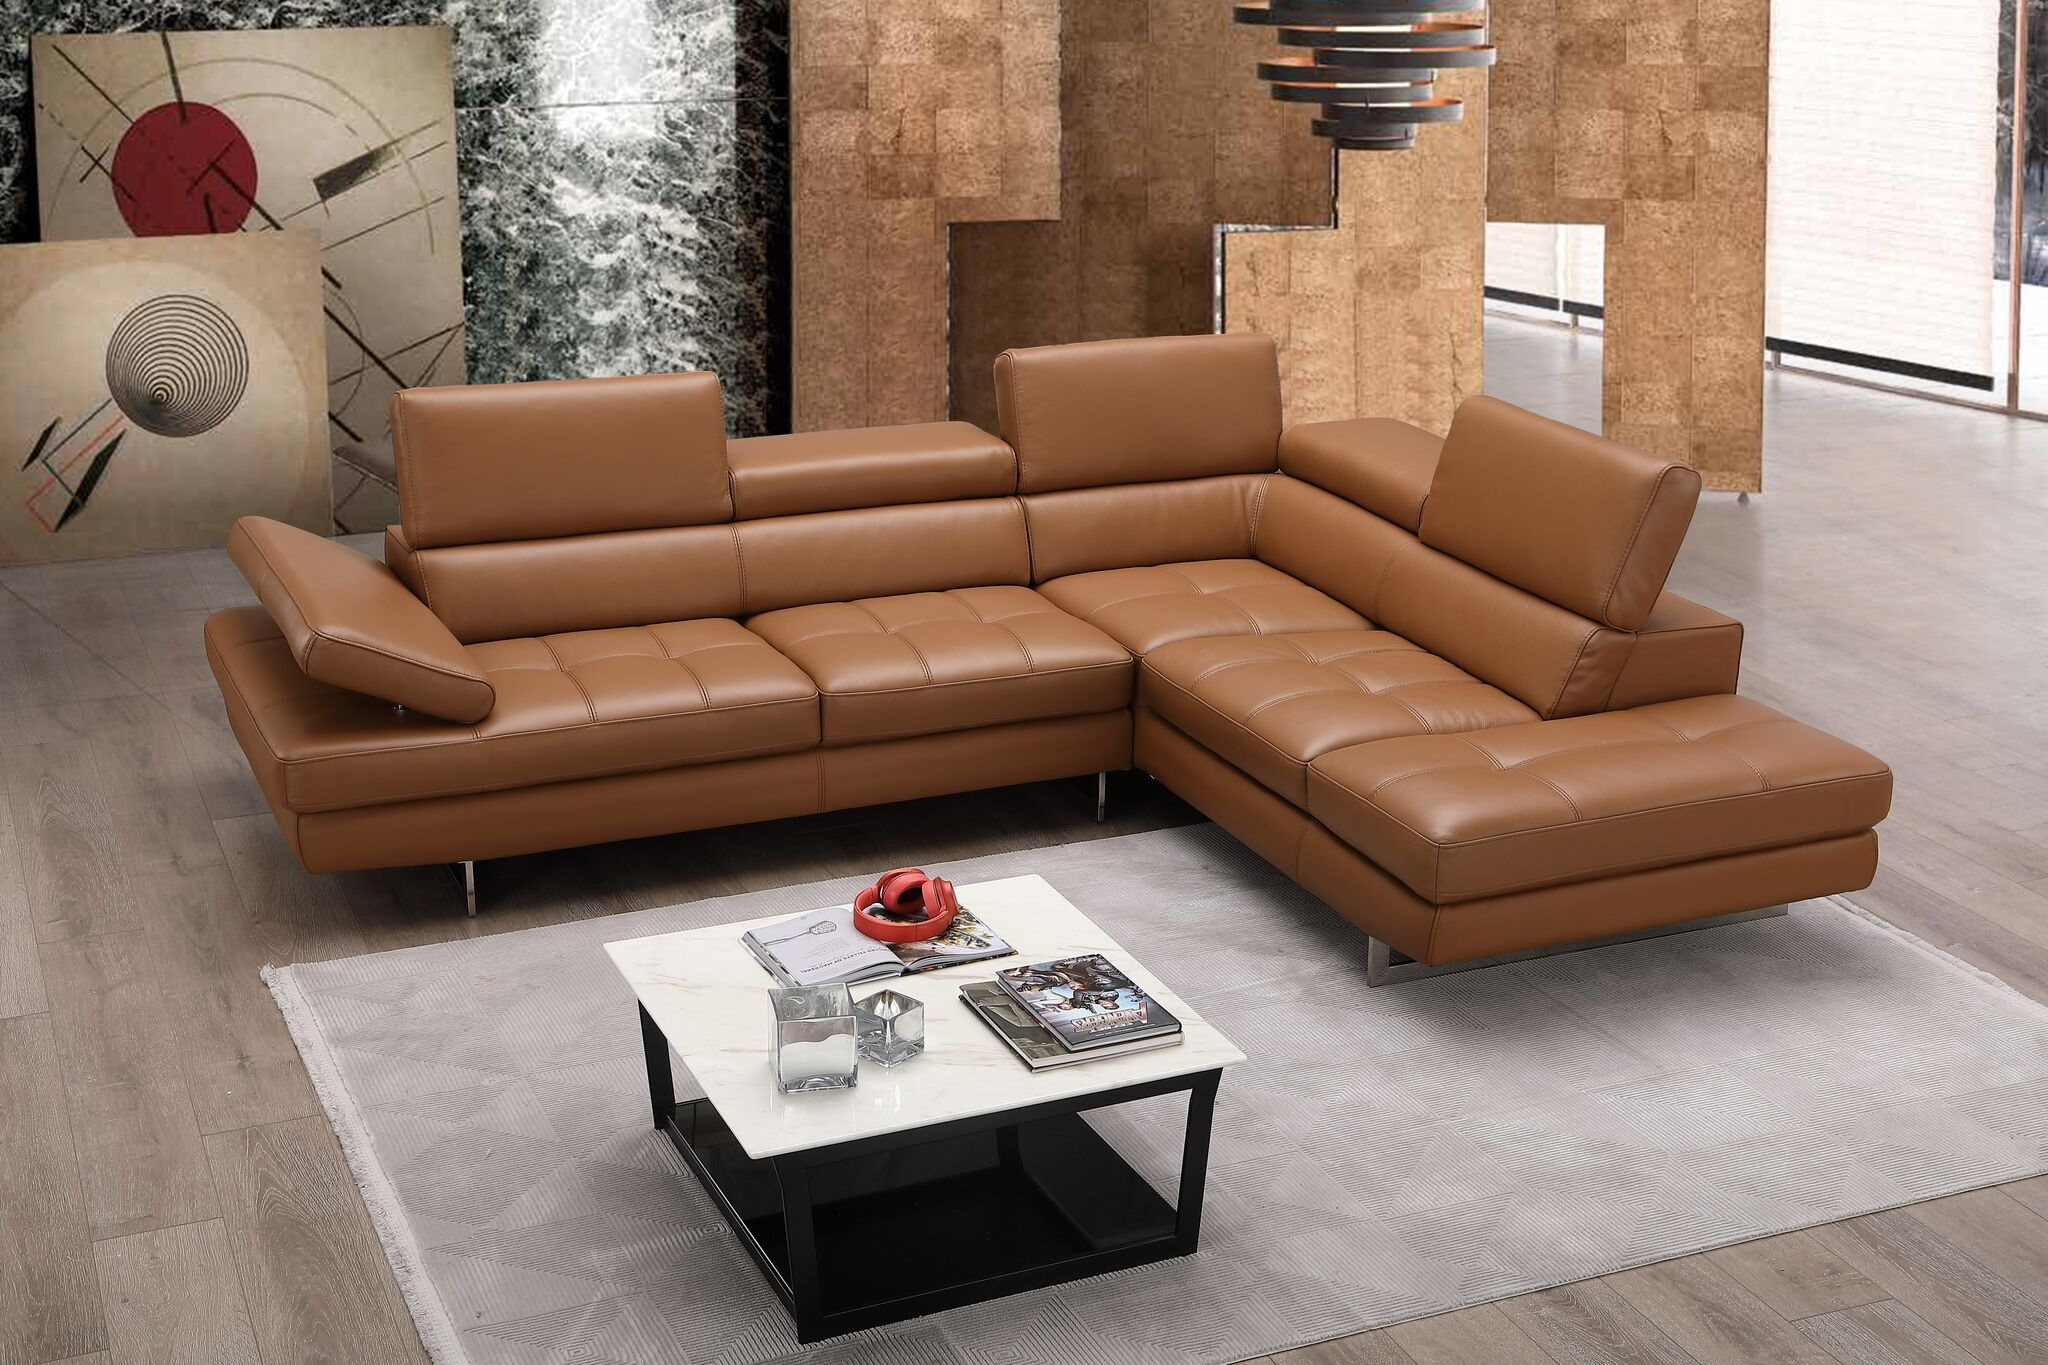 Wondrous Adjustable Head Cushions Designer Leather Sectional Evergreenethics Interior Chair Design Evergreenethicsorg